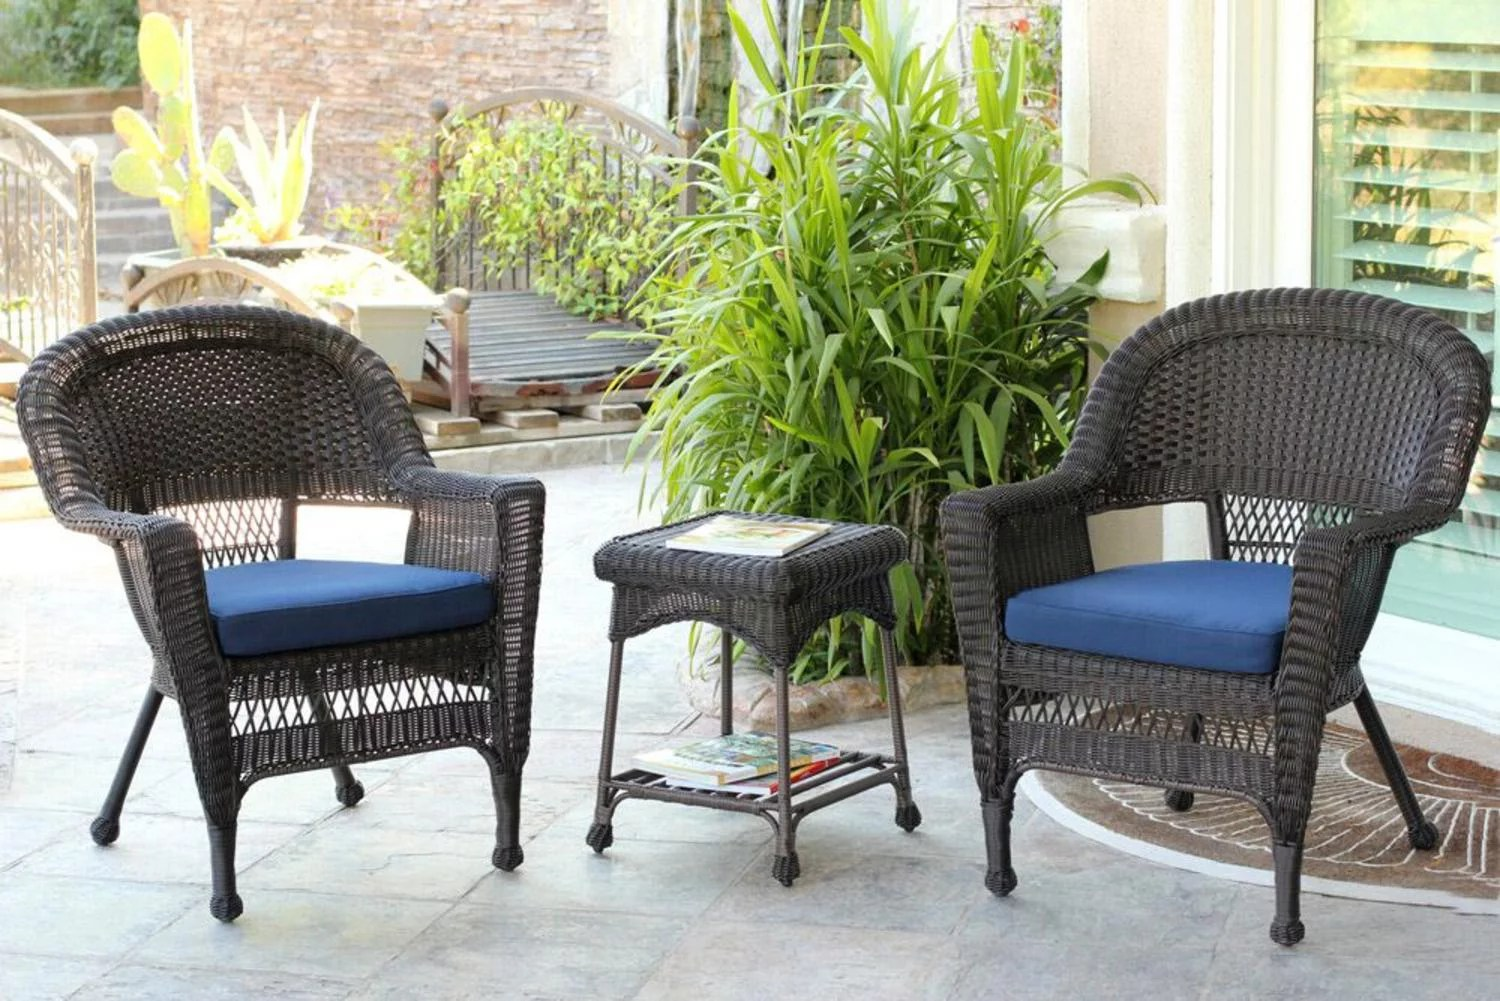 Black Patio Chairs 4 Piece Black Resin Wicker Patio Furniture Set Loveseat